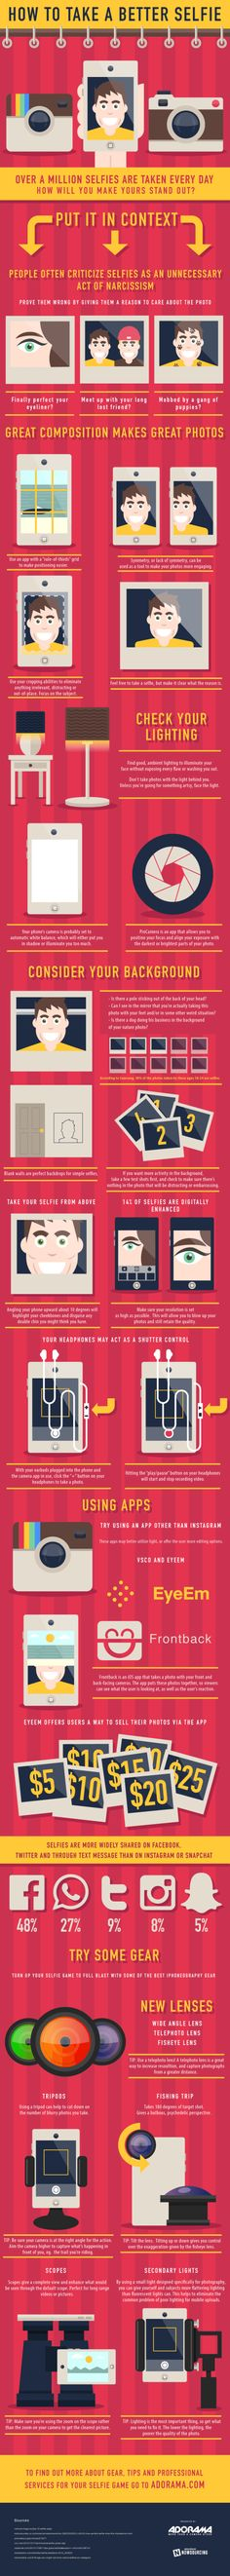 How to Take a Better Selfie  [by Adorama -- via #tipsographic]. More at tipsographinc.com